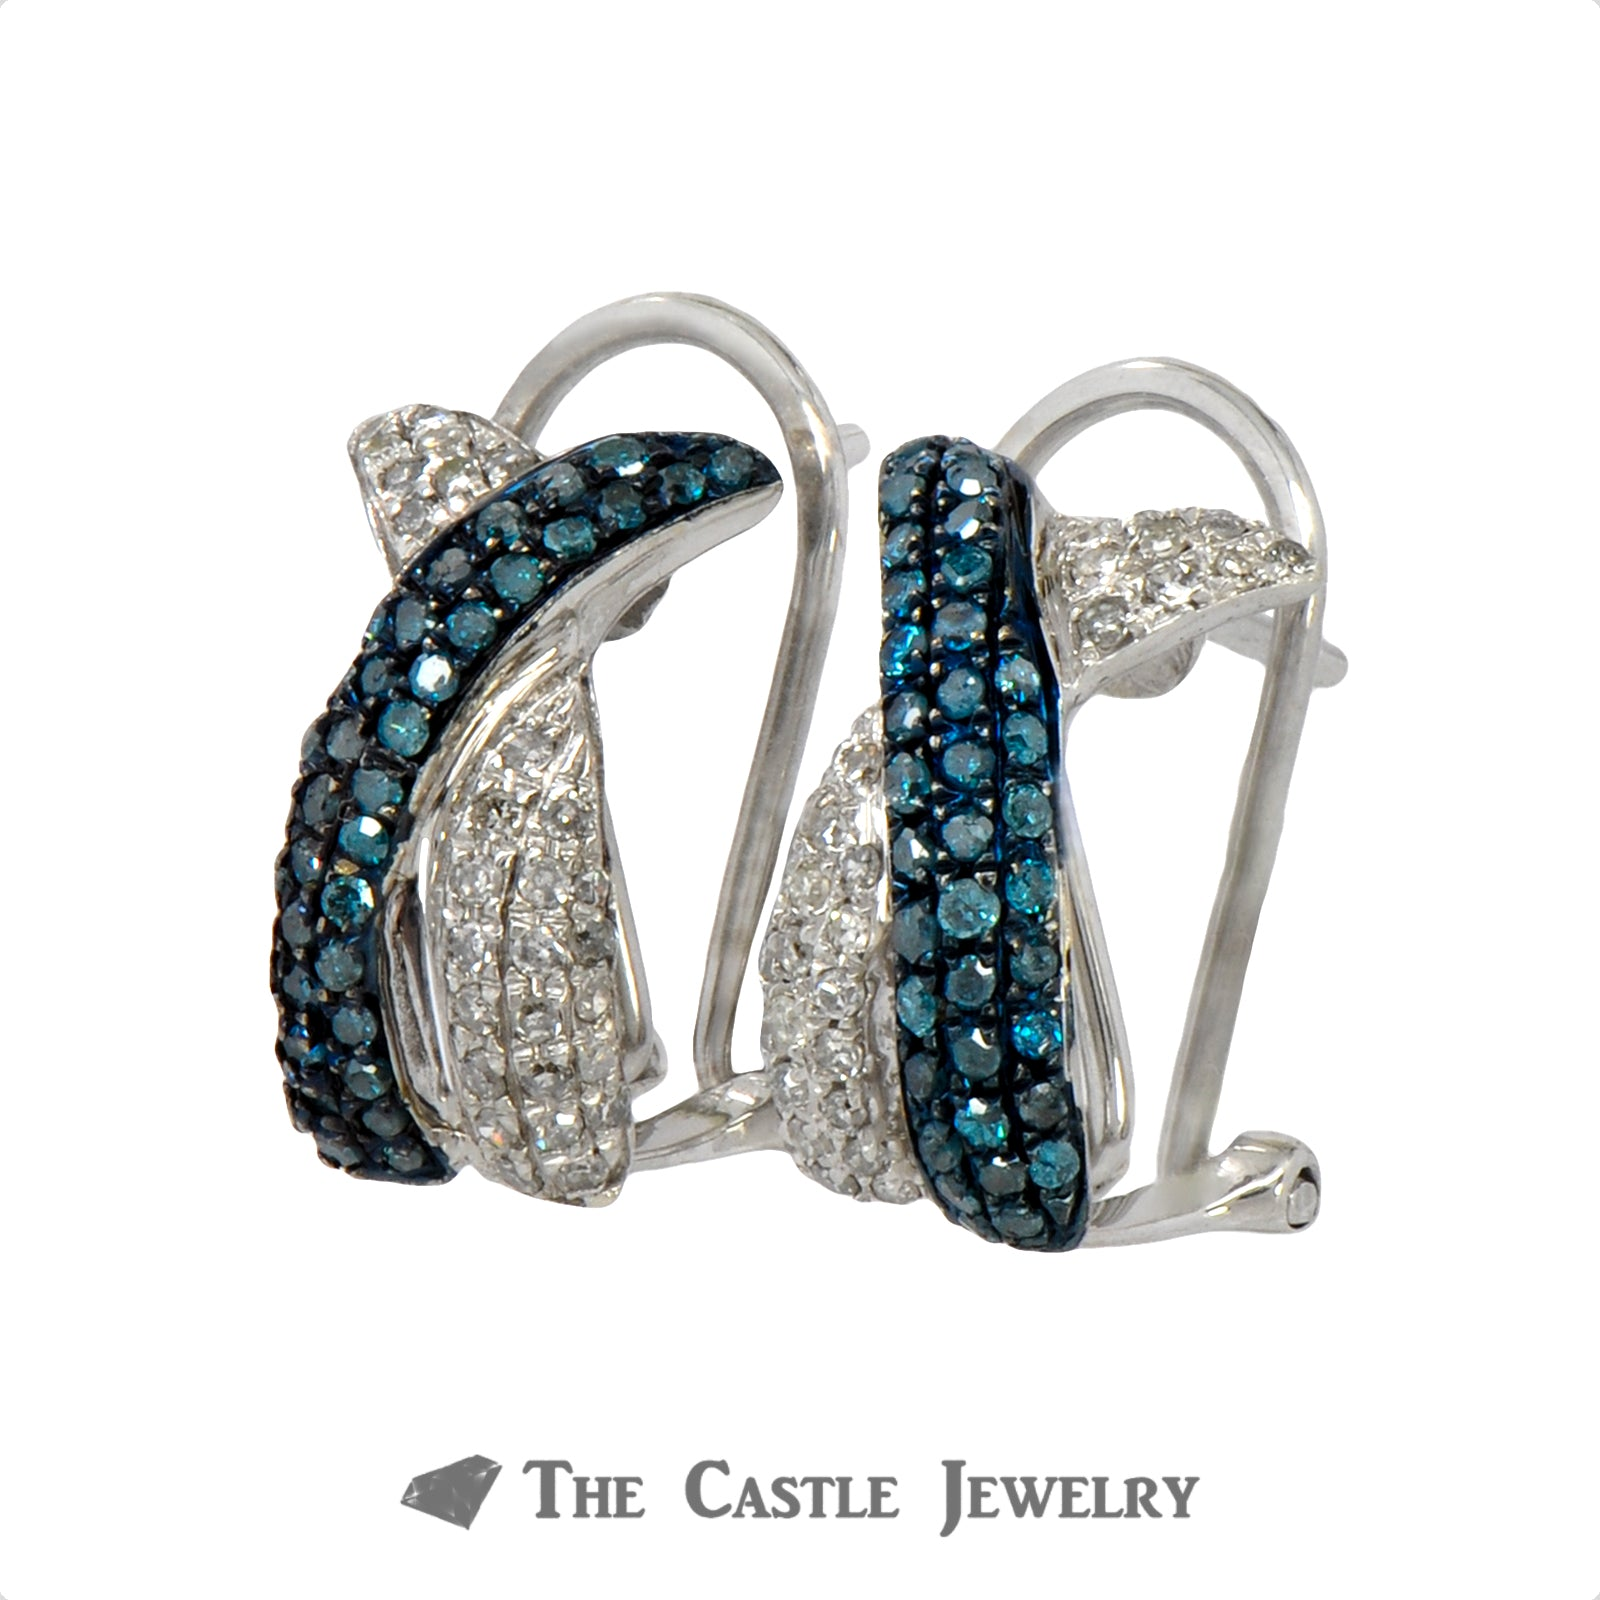 Interweaving Blue and White Pave Diamond Earrings in 10k White Gold-1